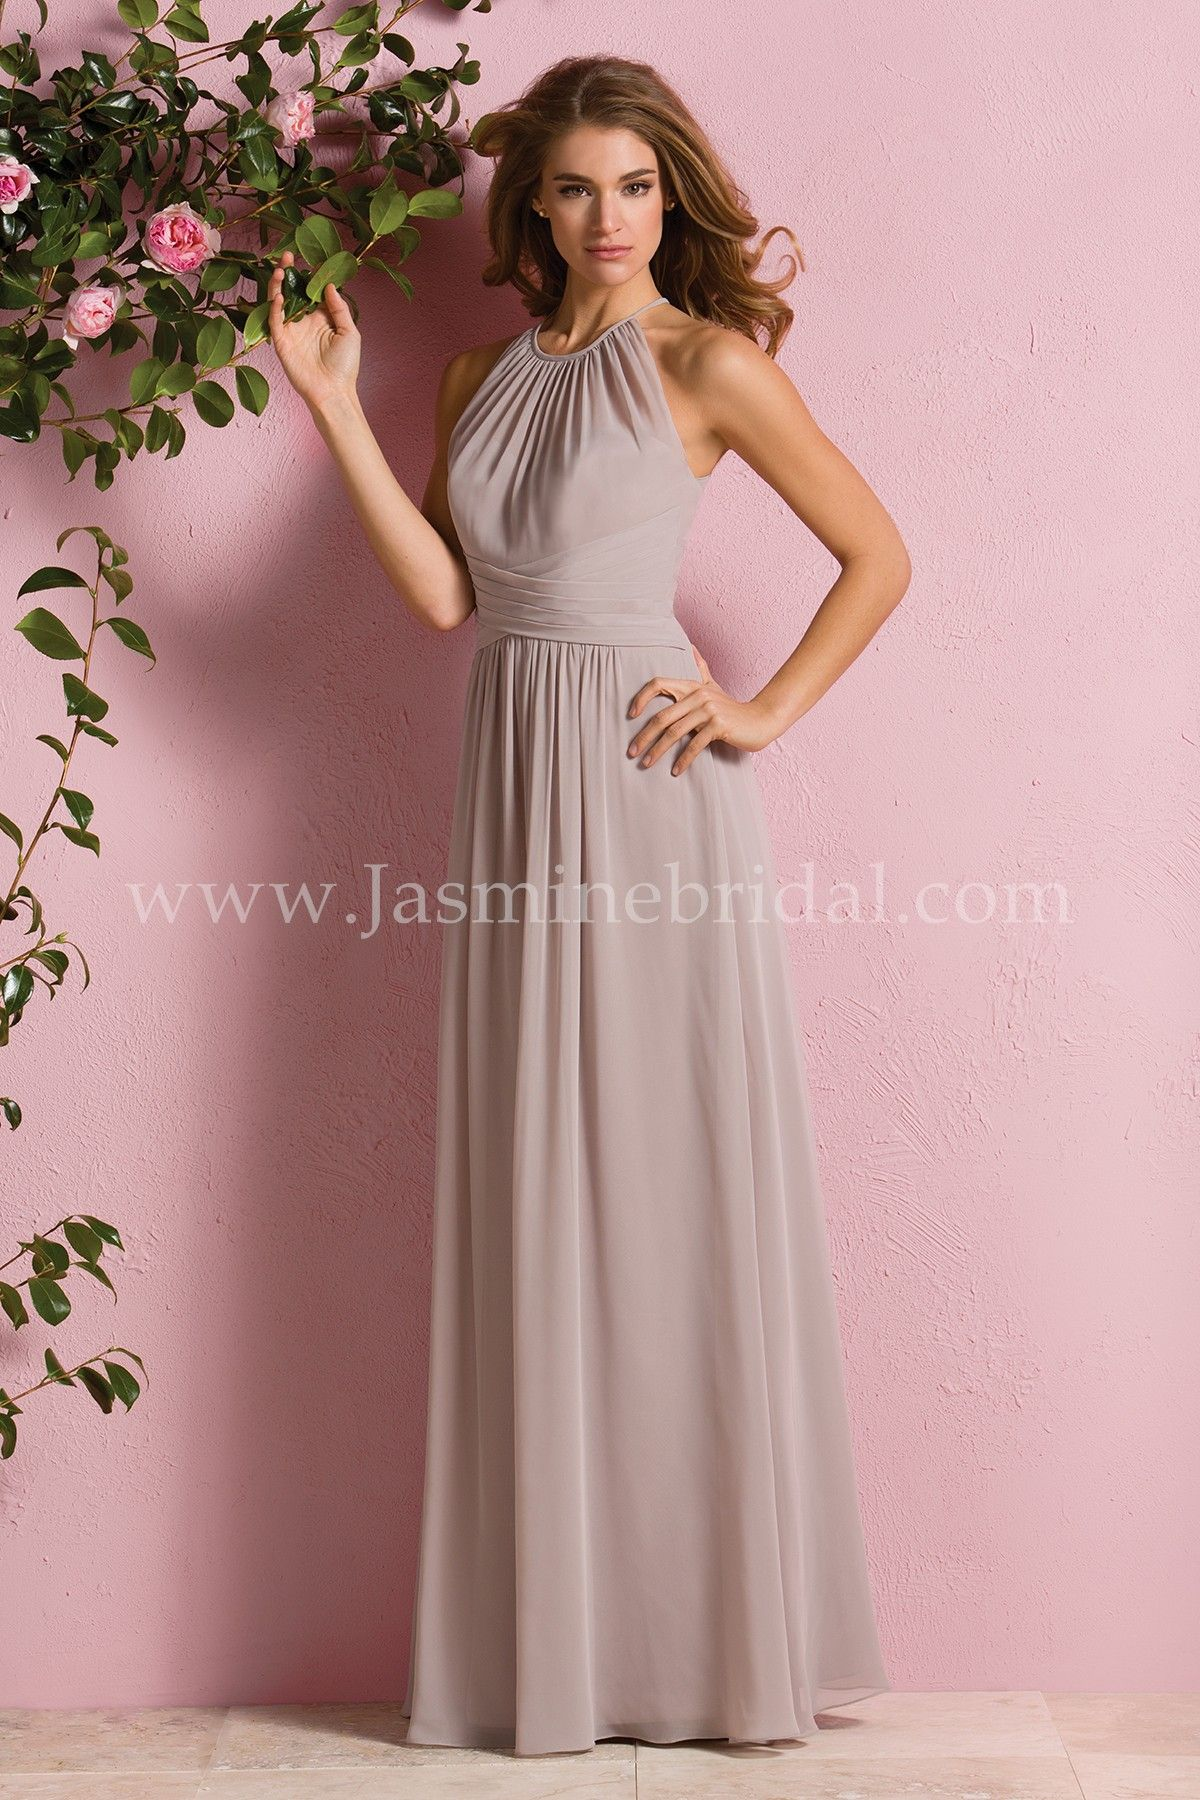 Jasmine Bridal Bridesmaid Dress B2 Style B173057 In Taupe A Beautiful Poly Chiffon That Makes Wonderful Addition To Any Party